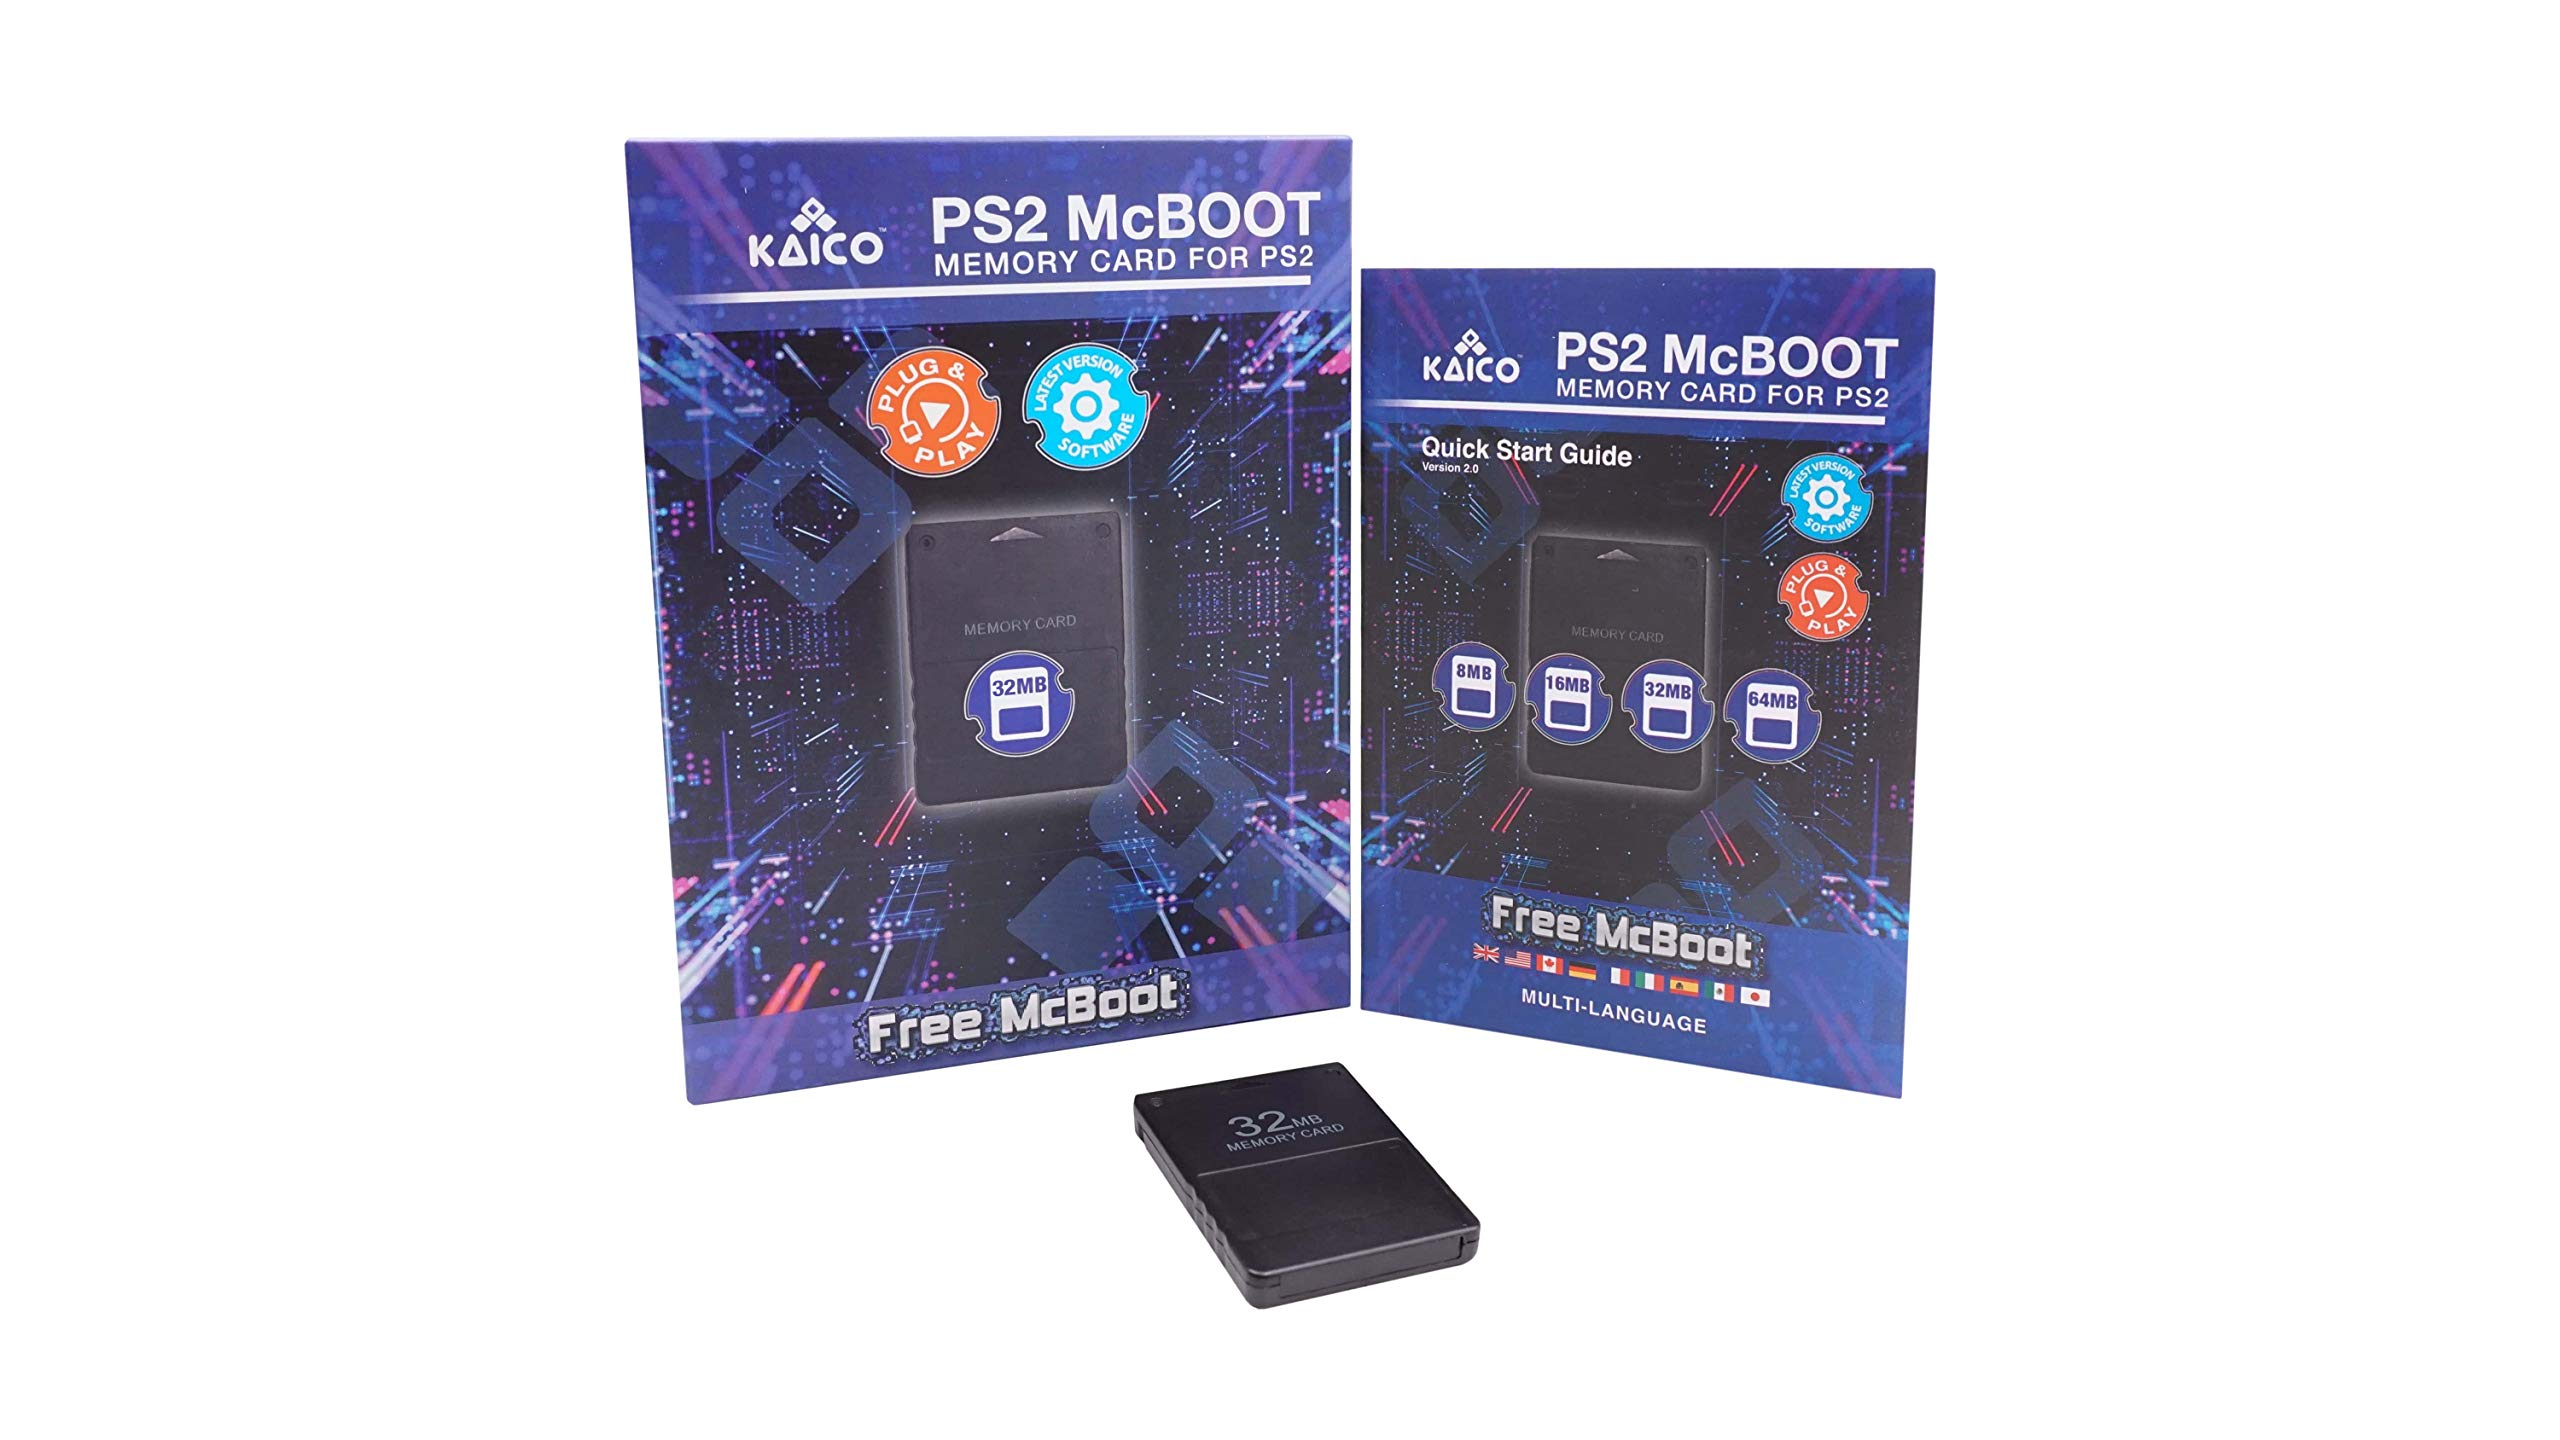 Kaico Free Mcboot 32MB PS2 Memory Card Running FMCB PS2 Mcboot 1.966 for Sony Playstation 2 - FMCB Free Mcboot Your PS2 - Plug and Play - Playstation 2 CFW McBoot 1.966